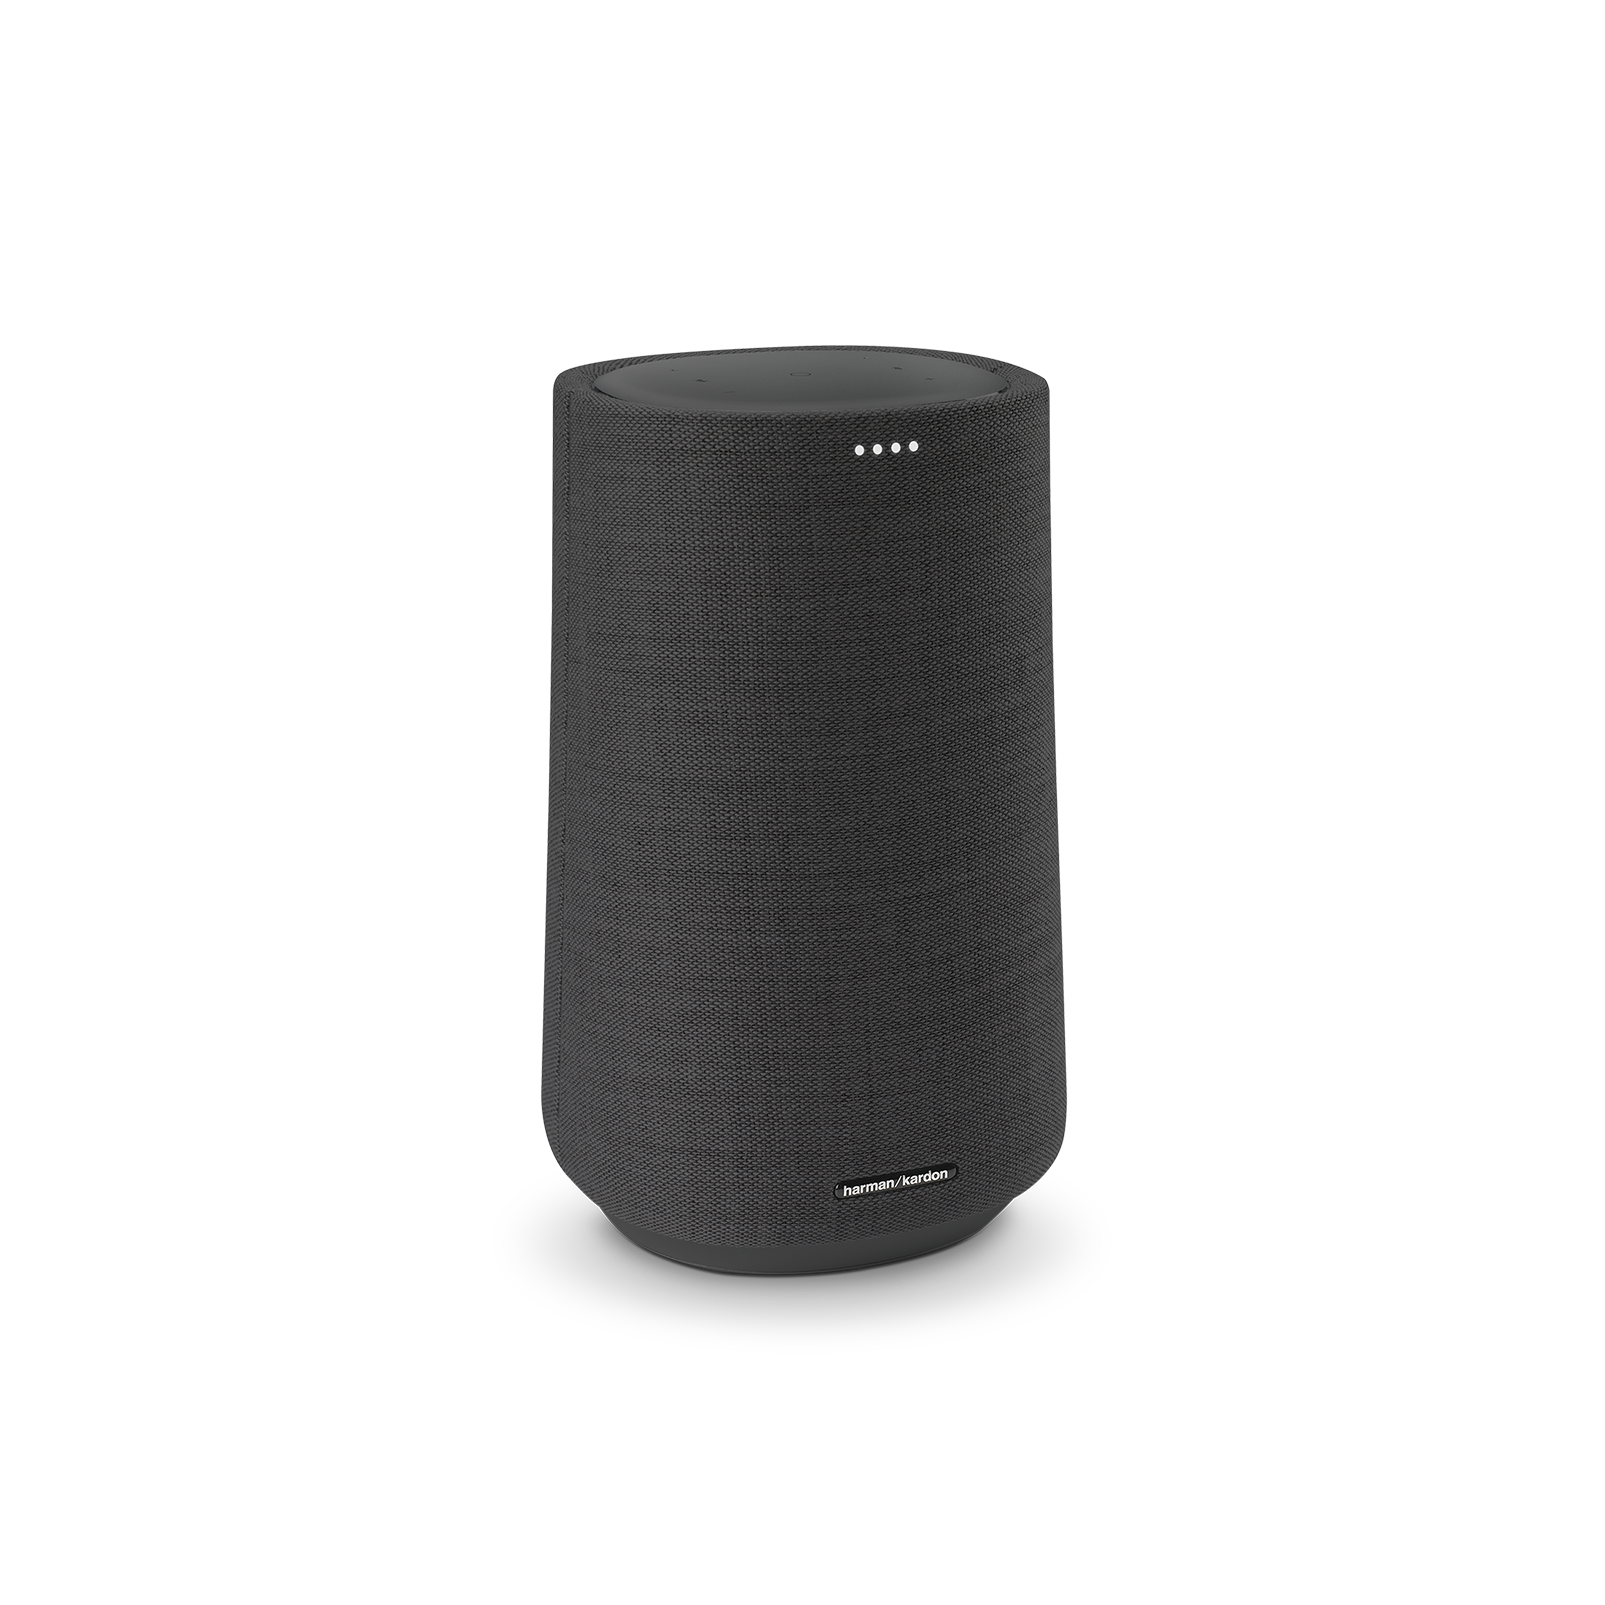 Harman Kardon Citation 100 MKII - Black - Bring rich wireless sound to any space with the smart and compact Harman Kardon Citation 100 mkII. Its innovative features include AirPlay, Chromecast built-in and the Google Assistant. - Hero